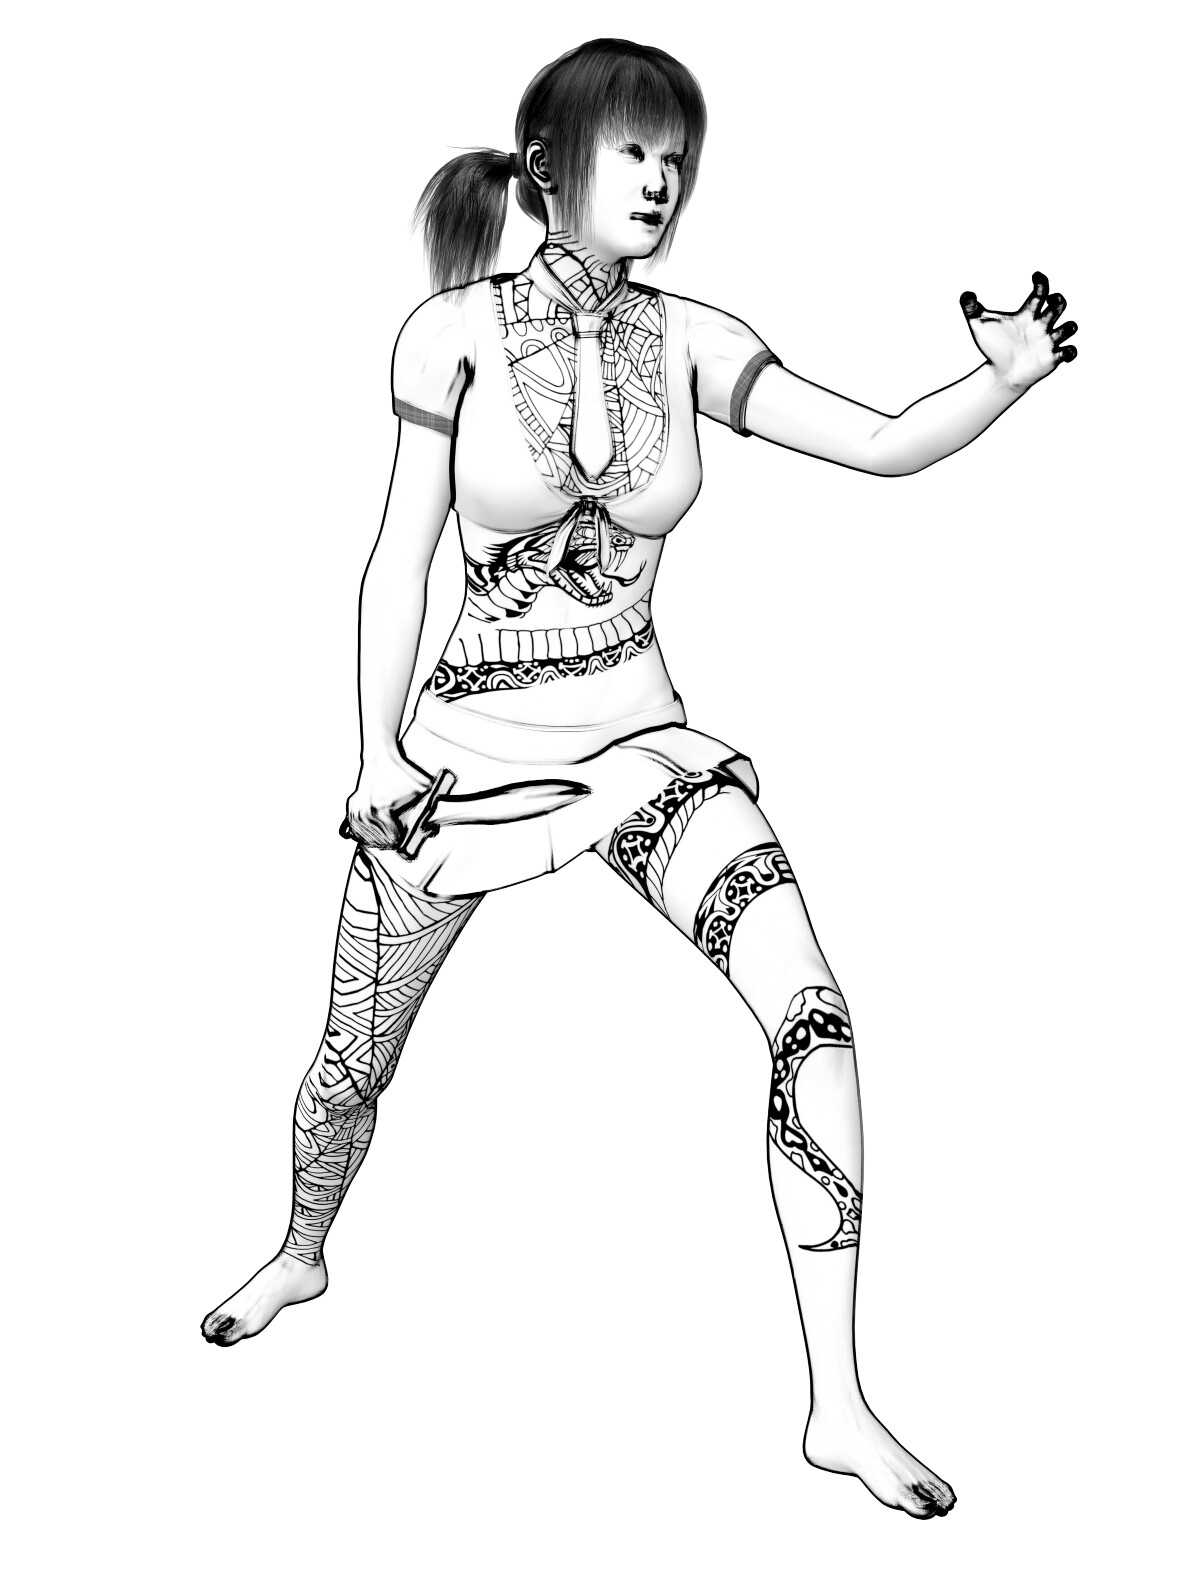 Example of character drawings